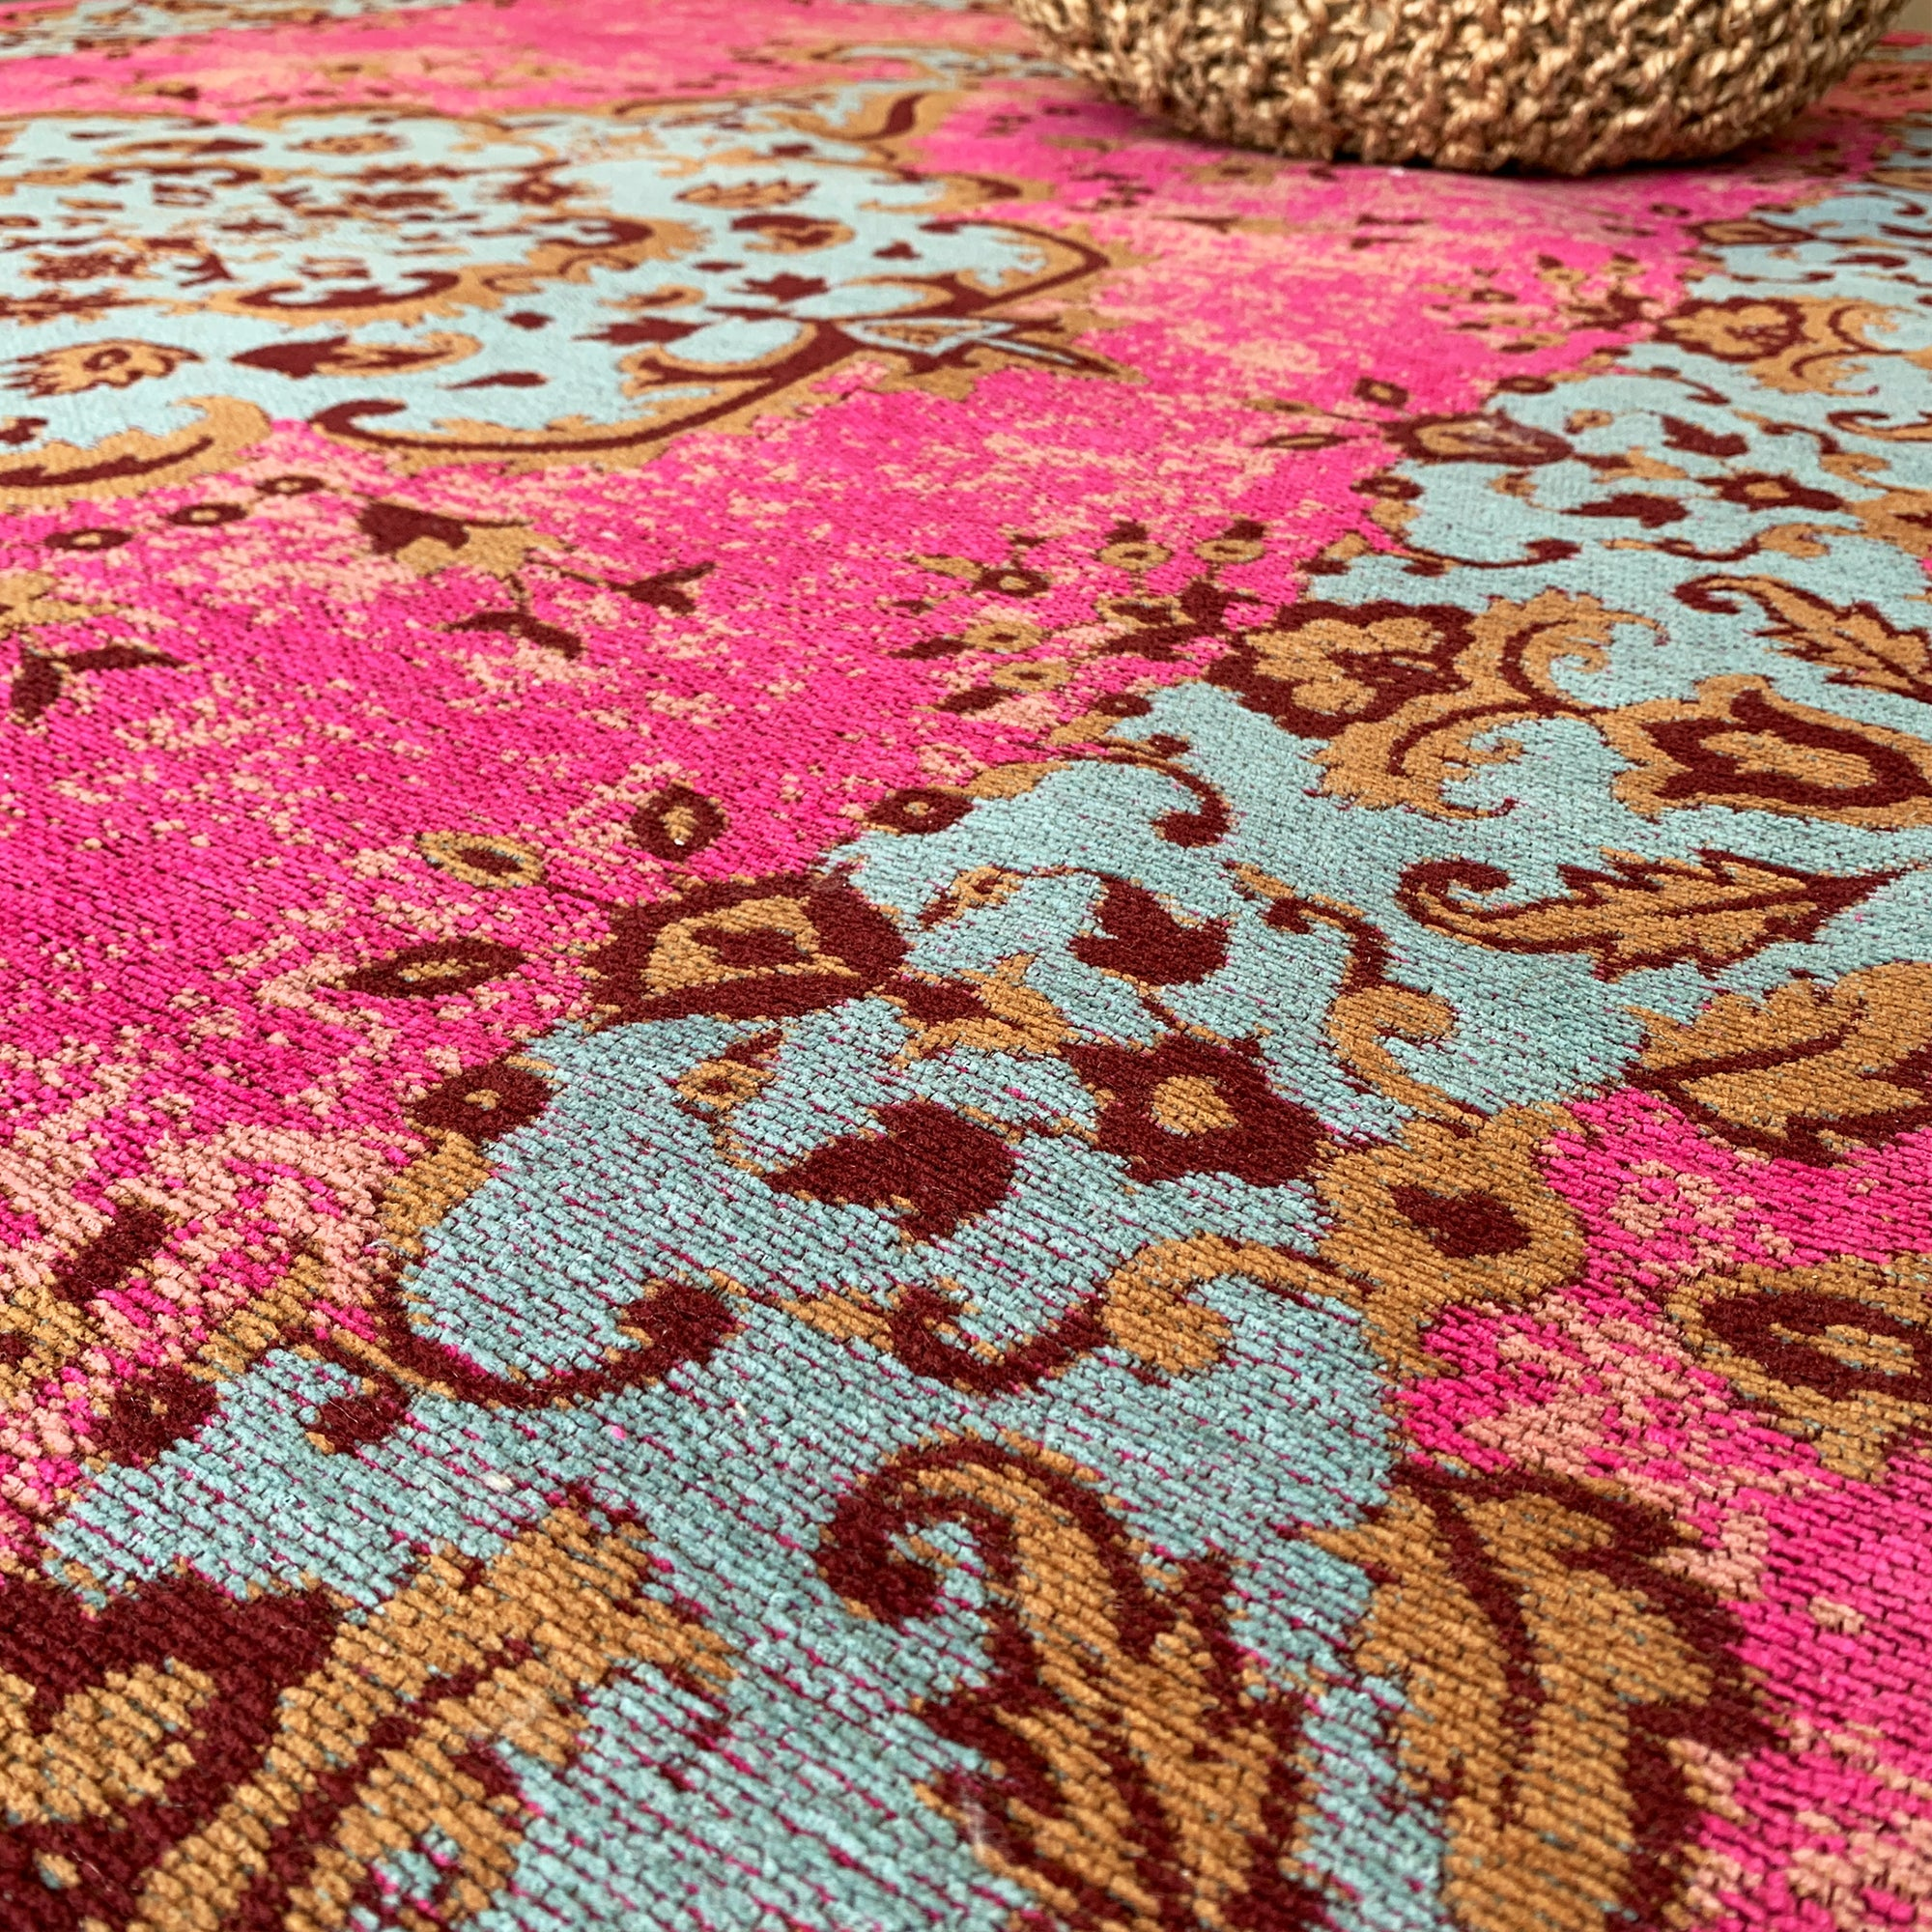 230X160 cm  handmade Rug Melenia-MX-162-L -  230X160 سم سجادة ميلينيا صناعة يدوية - Shop Online Furniture and Home Decor Store in Dubai, UAE at ebarza